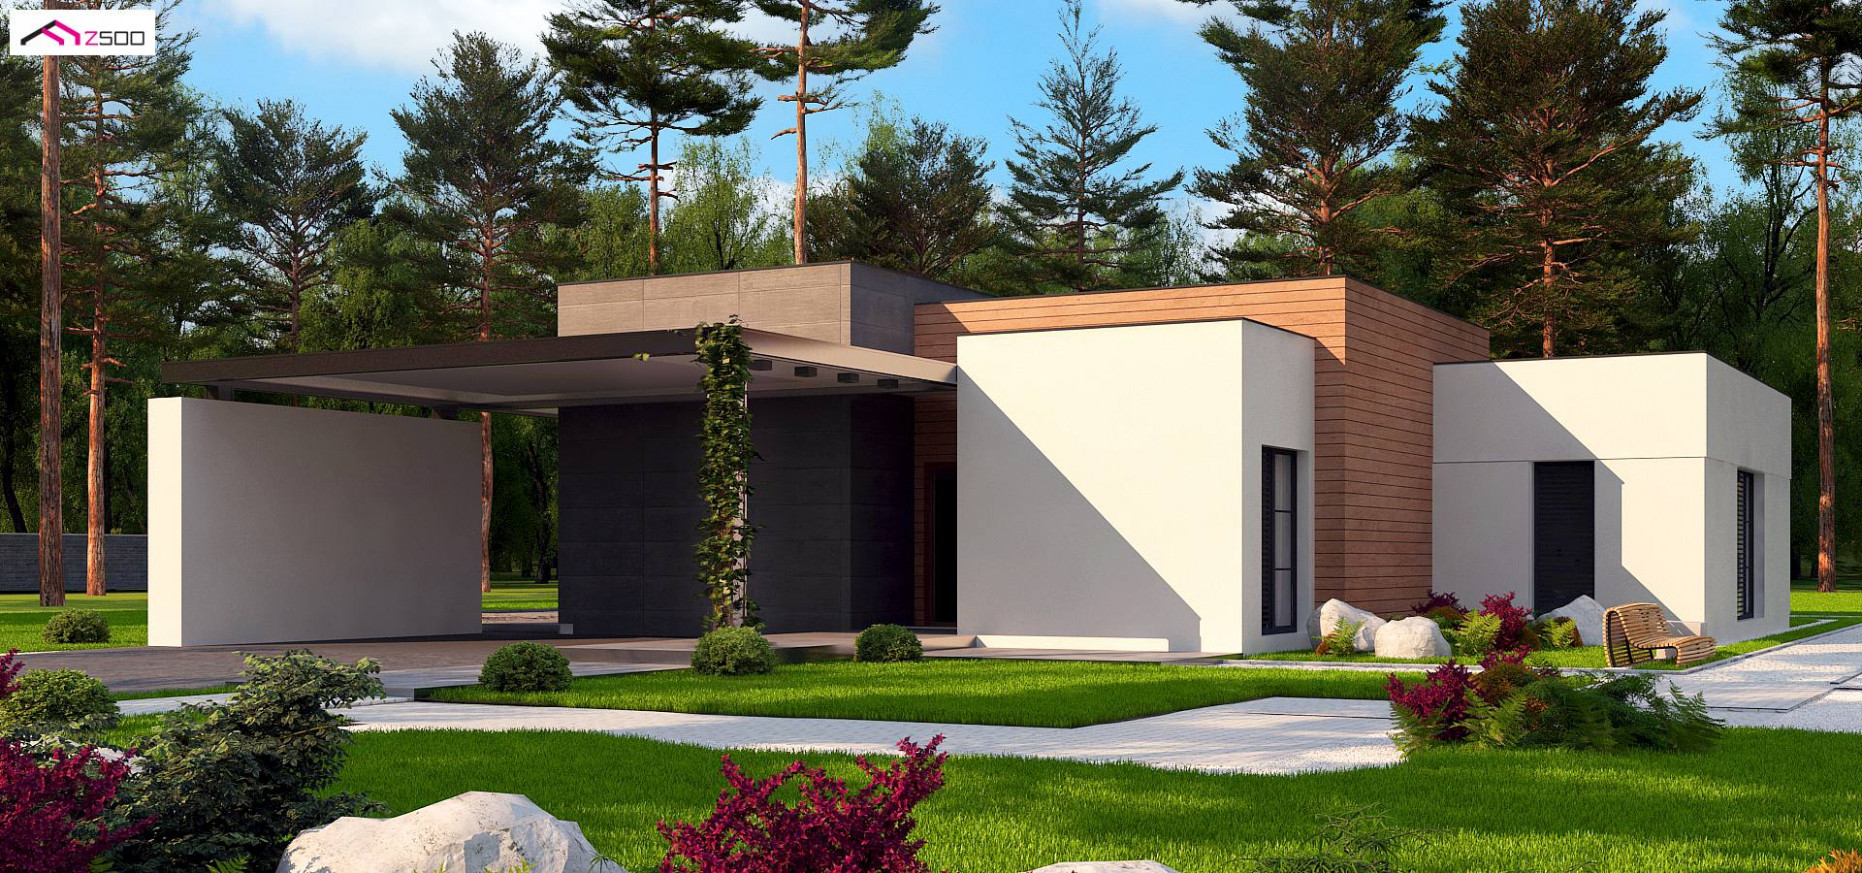 House Design Zx8 A Modern One Storey House With A Carport ..